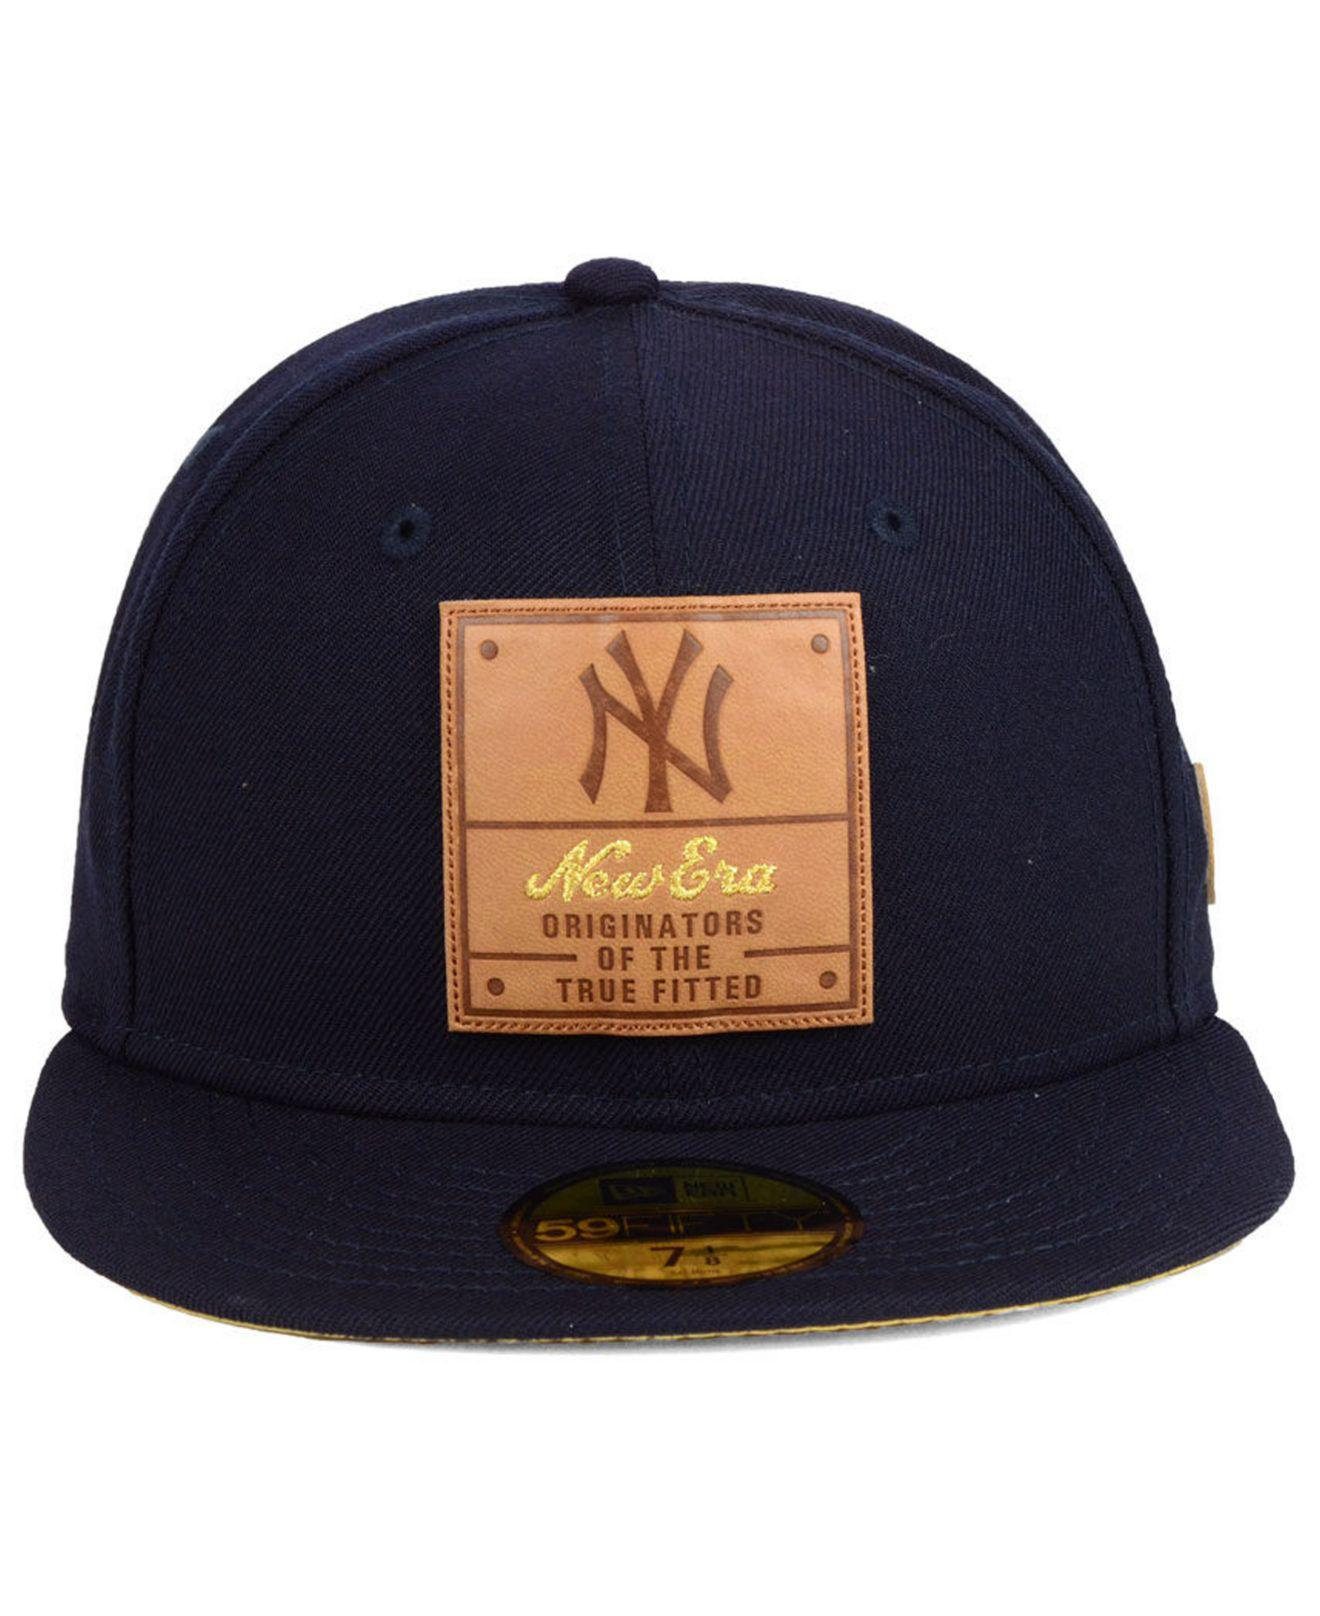 6df99e582a9 Lyst - KTZ New York Yankees Vintage Team Color 59fifty Fitted Cap in Blue  for Men